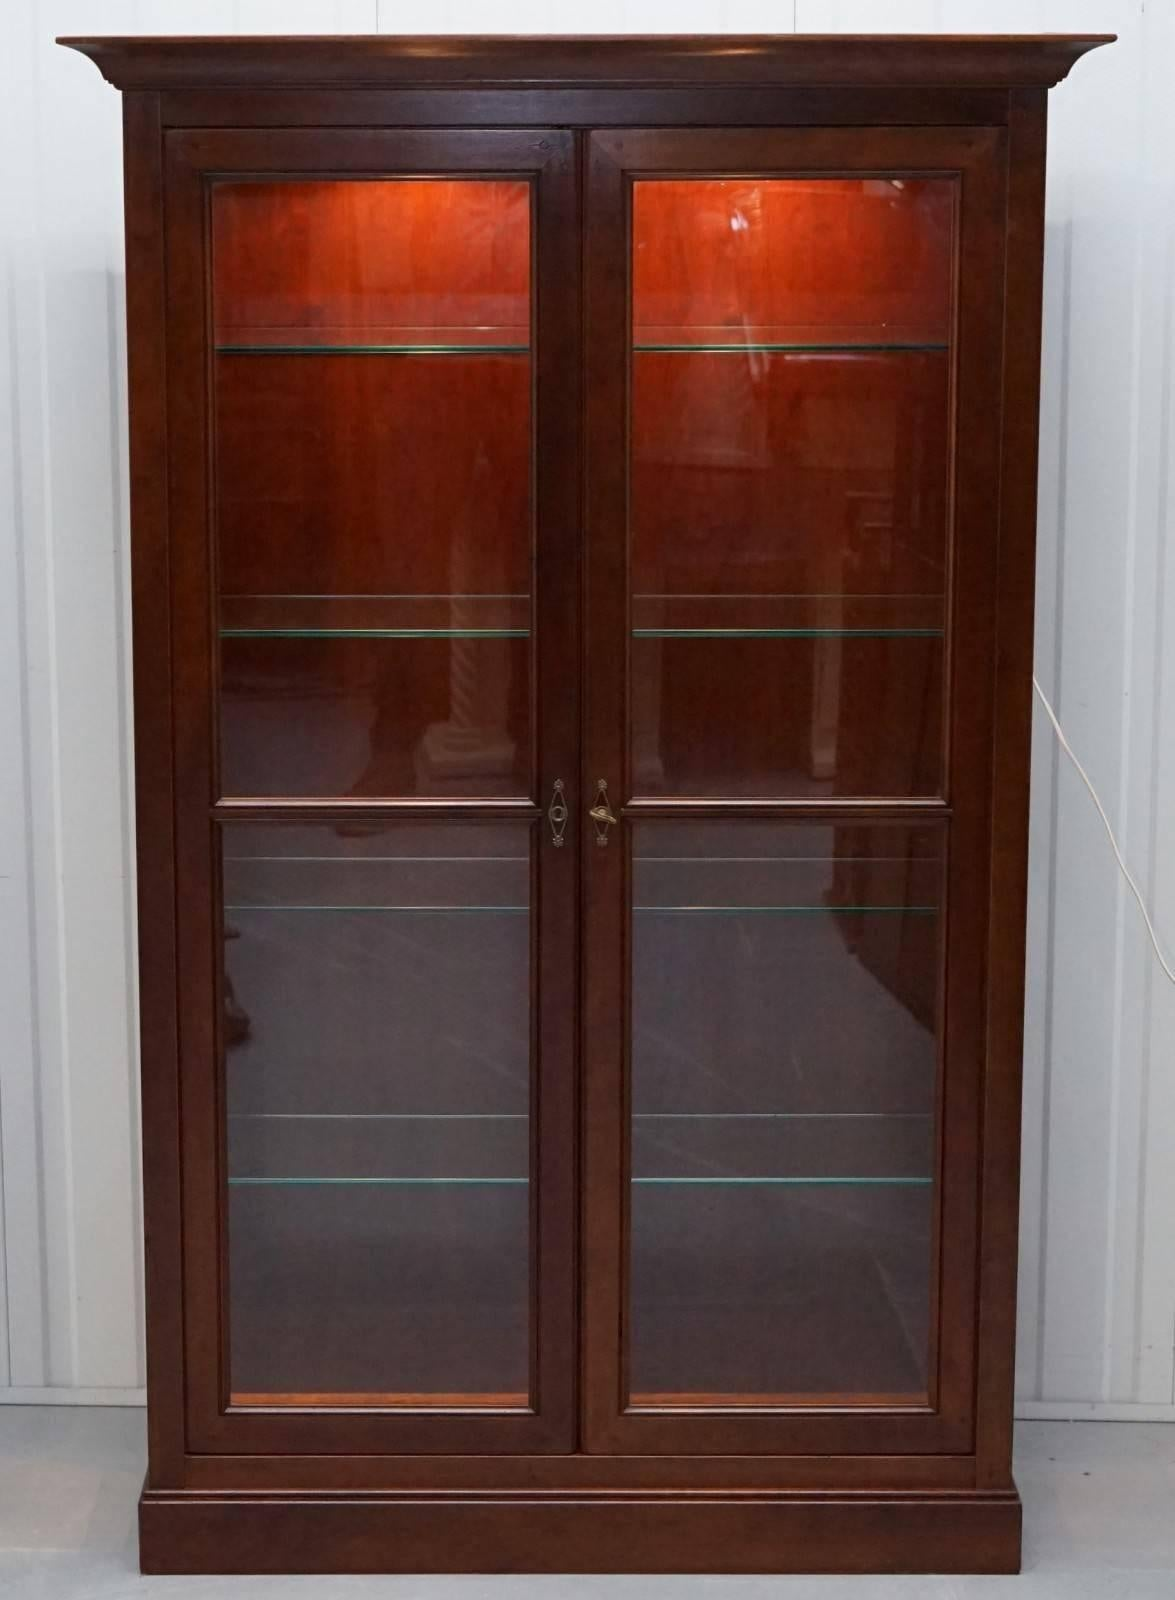 Stunning Grange Solid Cherry Wood Glass Display Cabinet With